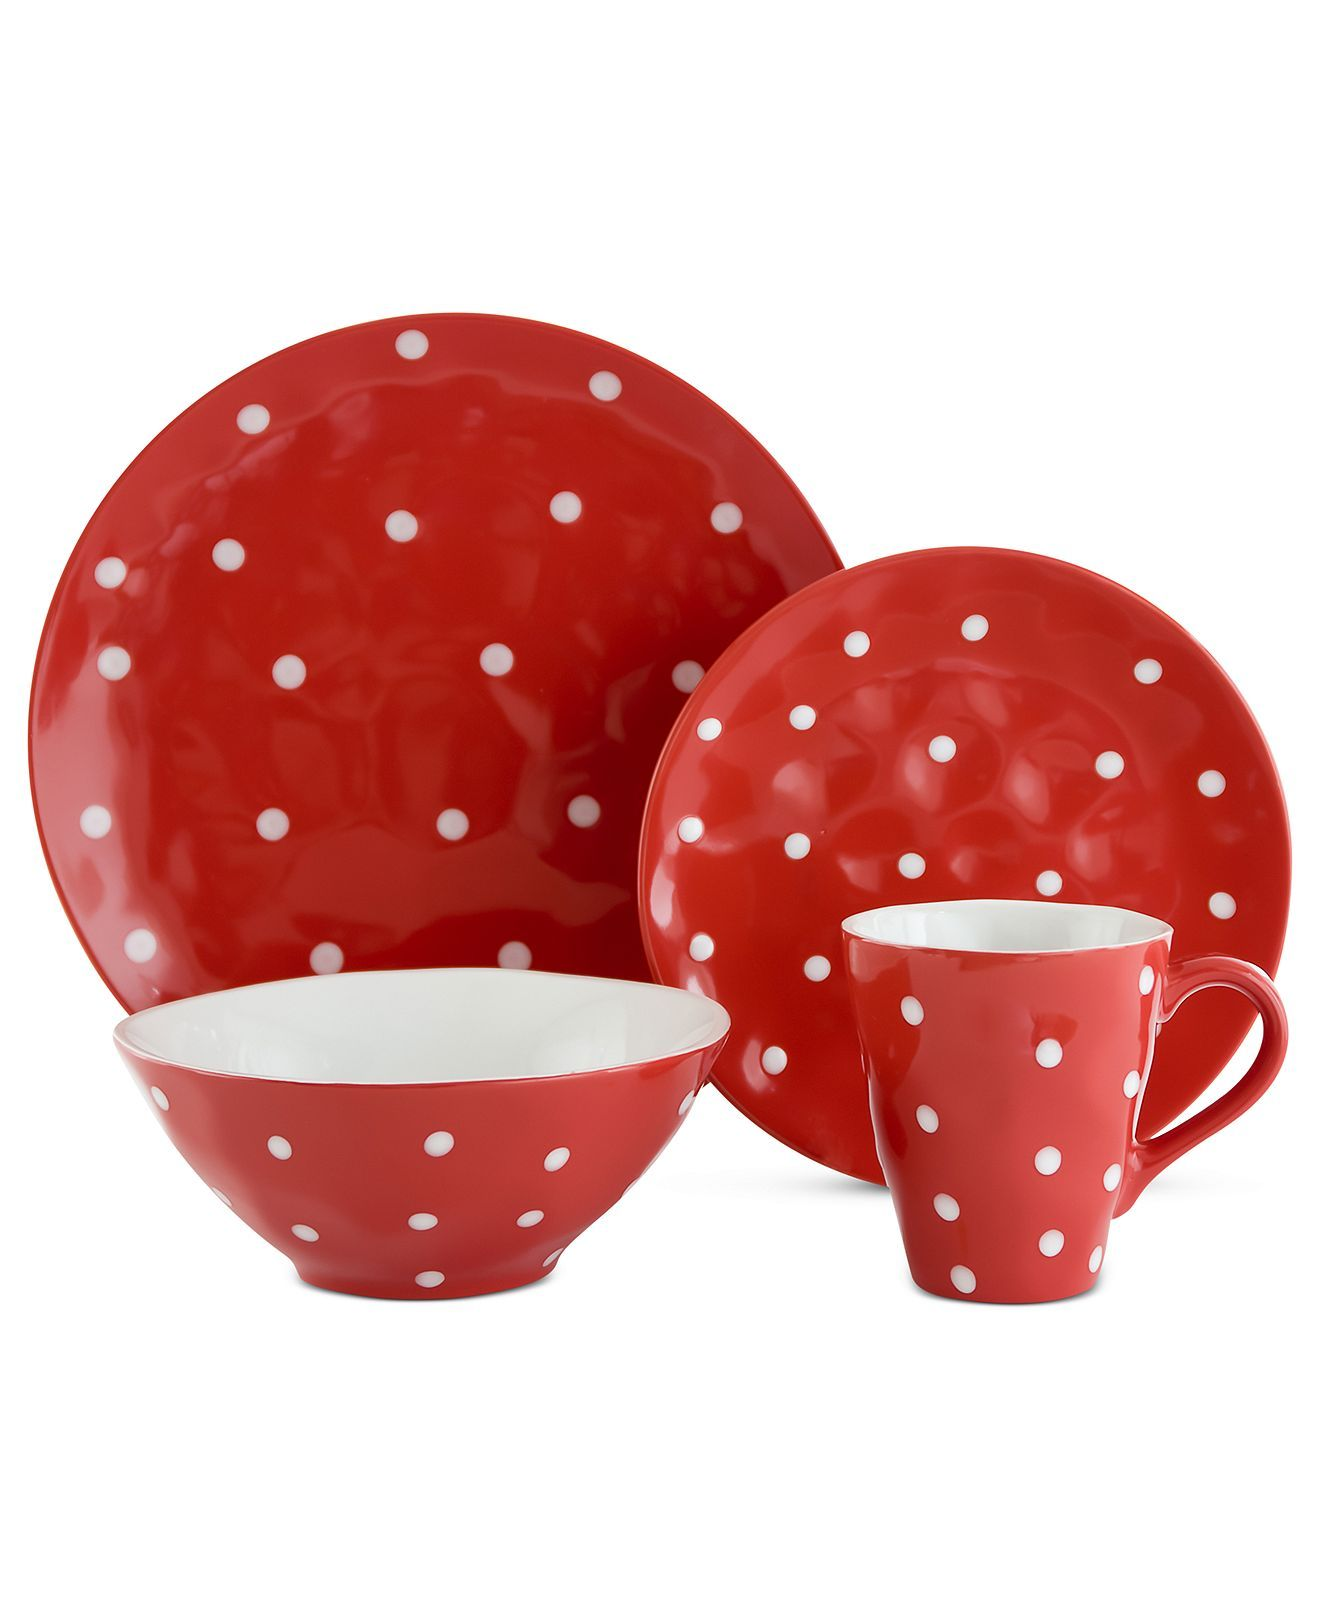 maxwell williams mix and match dinnerware sprinkle 4 piece place setting casual dinnerware. Black Bedroom Furniture Sets. Home Design Ideas